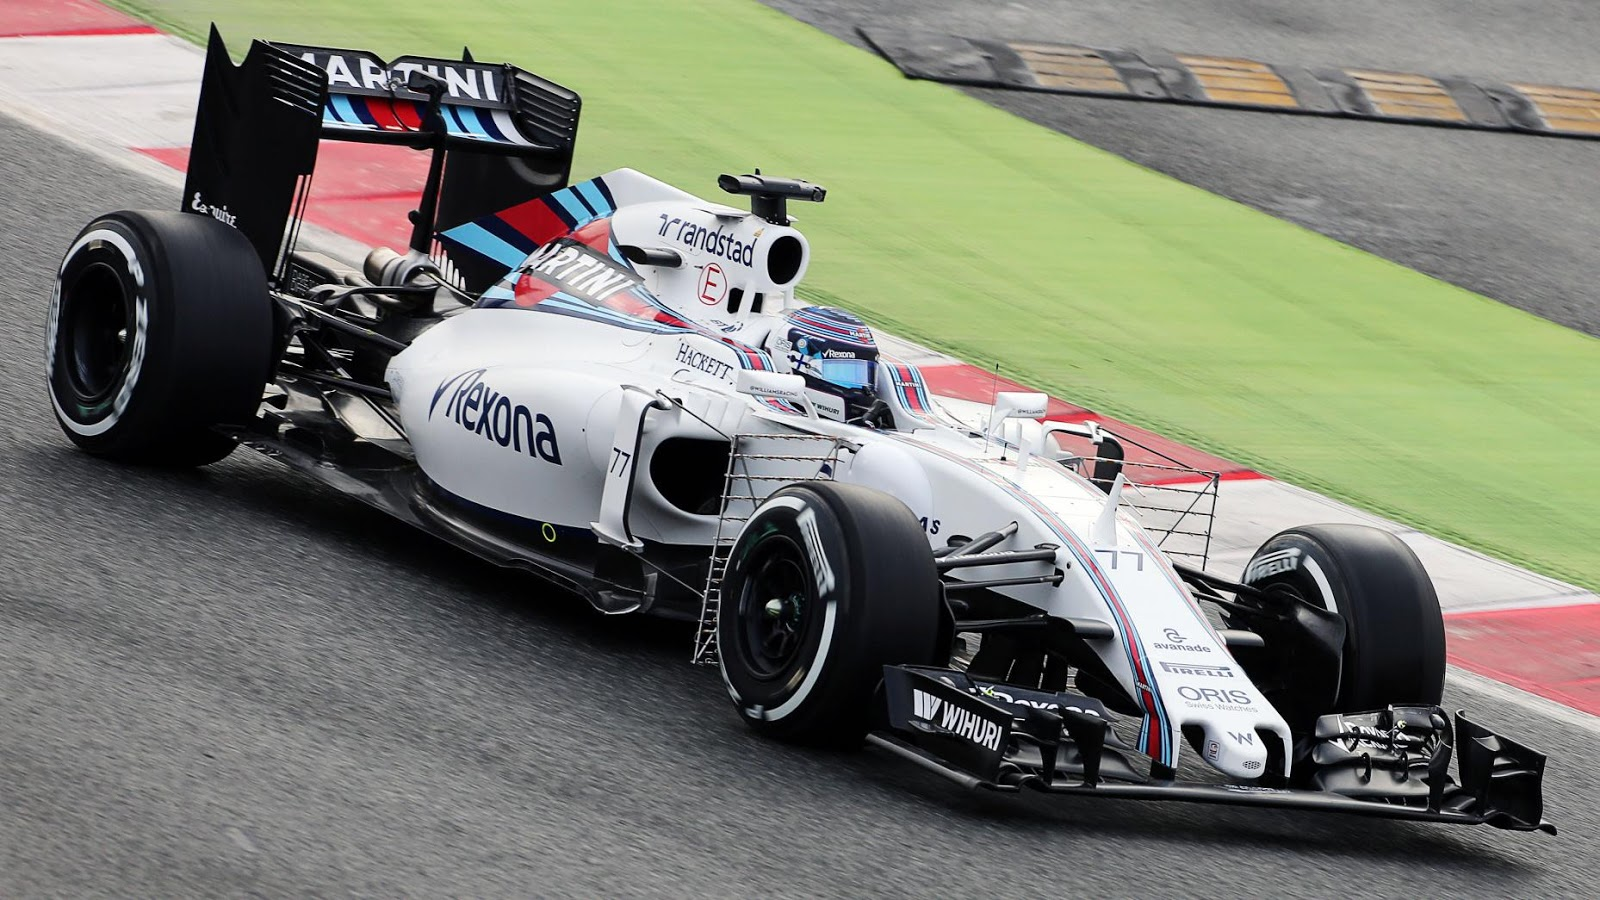 Williams Martini Racing – FW38